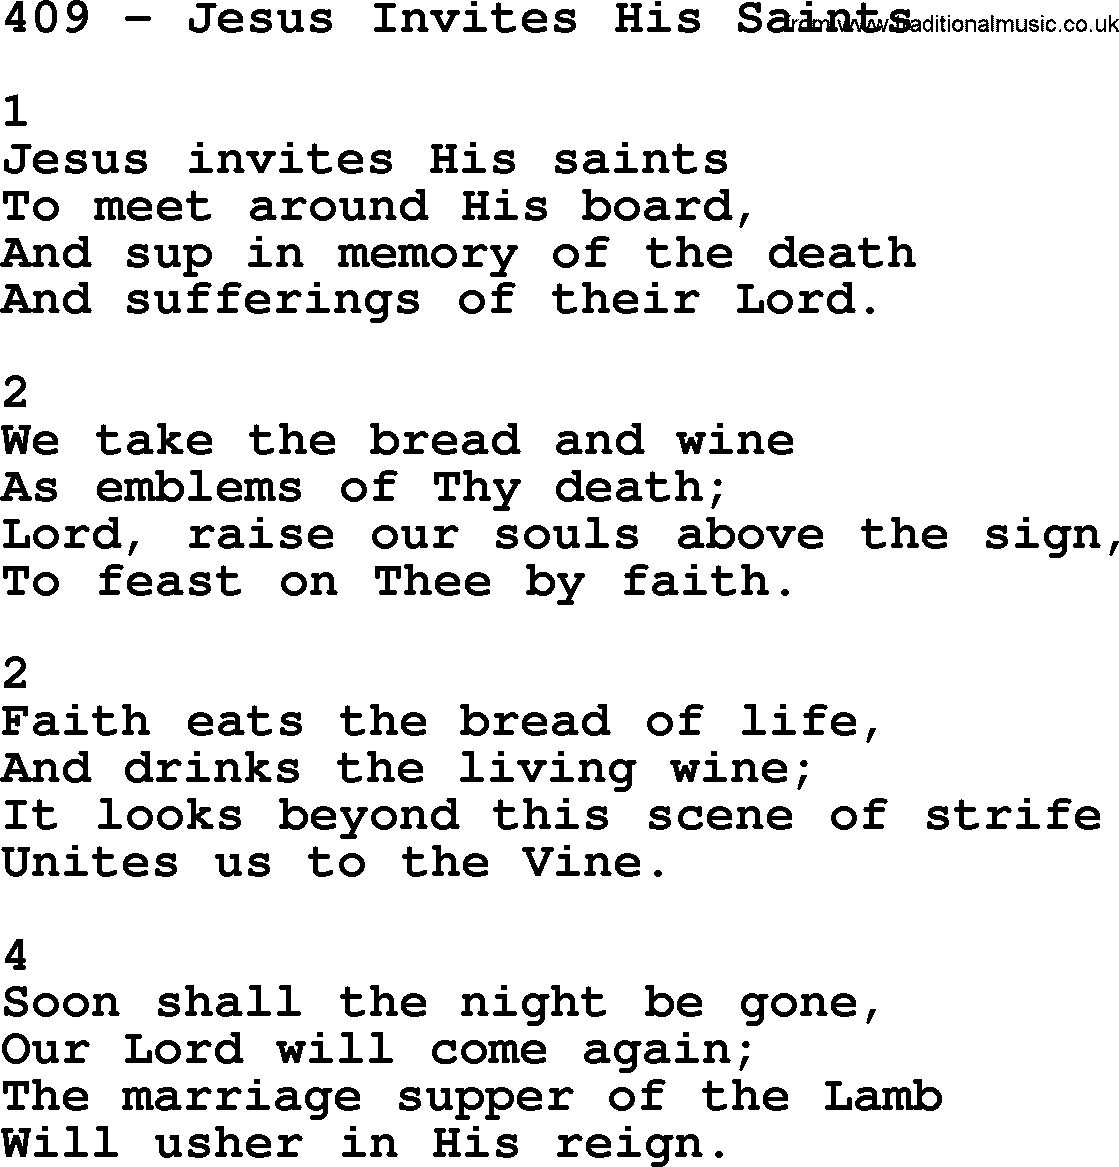 Adventist hymnal song 409 jesus invites his saints with lyrics complete adventis hymnal title 409 jesus invites his saints with lyrics stopboris Images